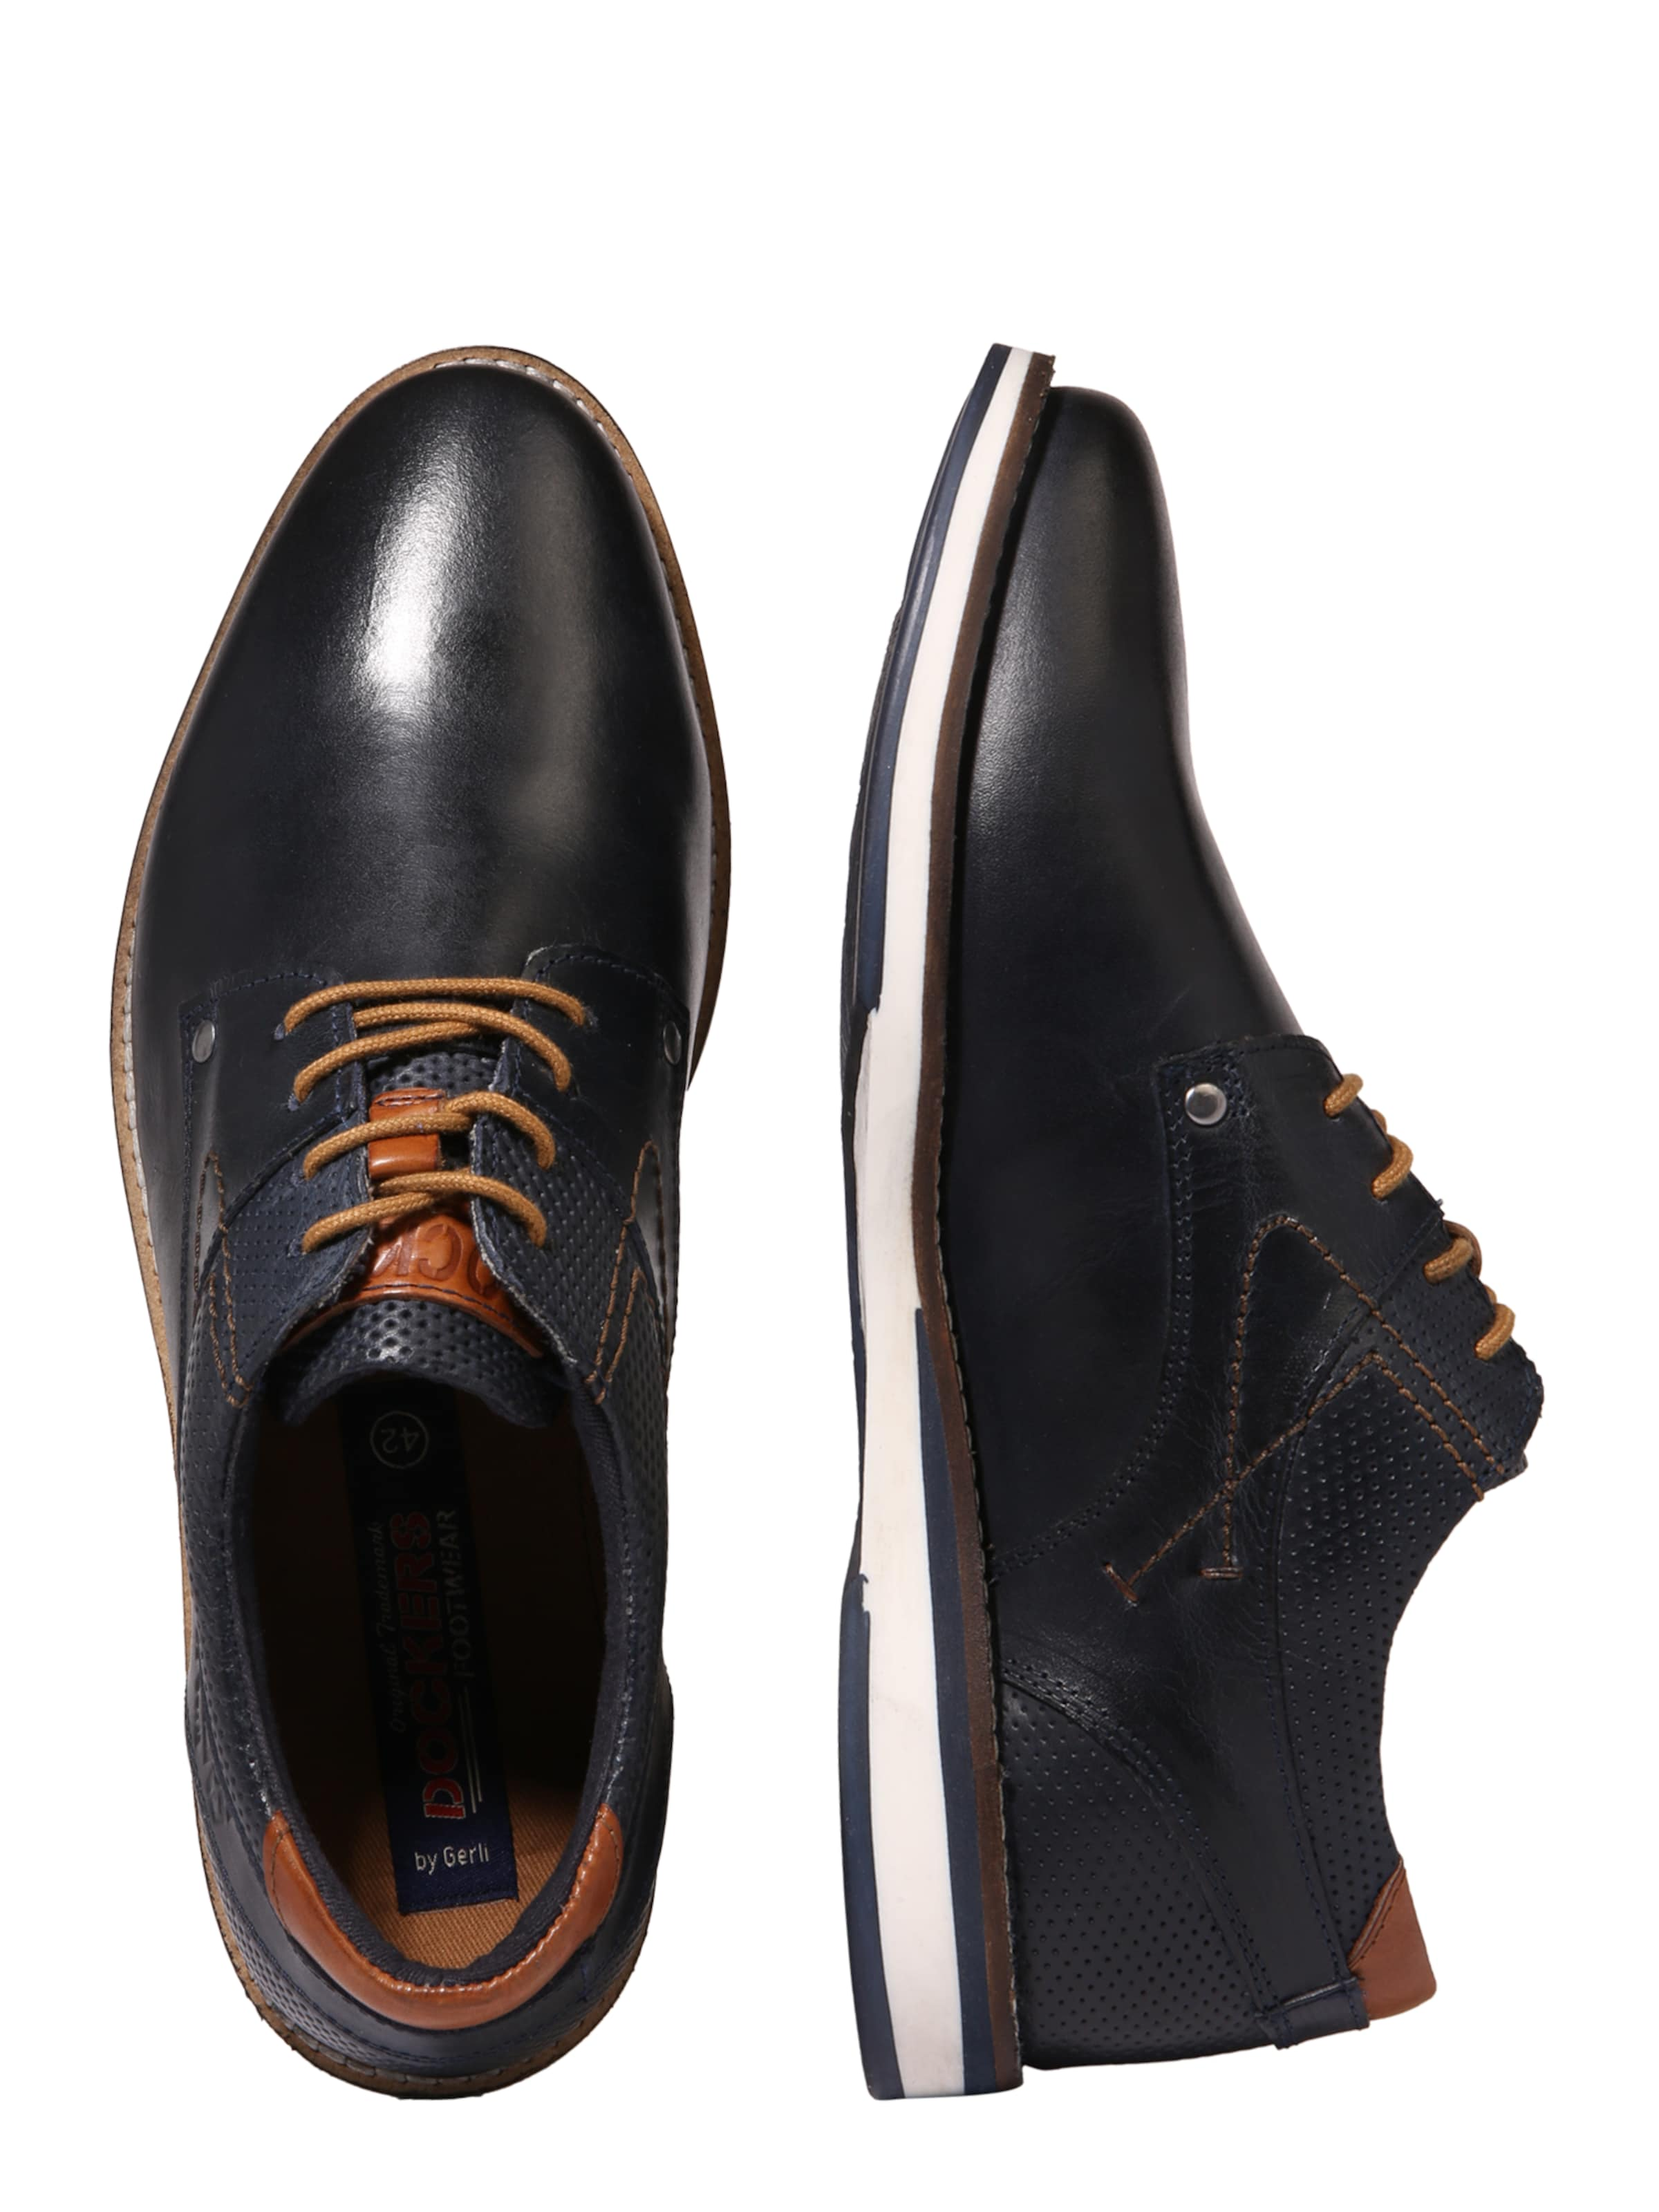 In By Dockers Gerli NavyCognac Halbschuhe 80PXnOwk